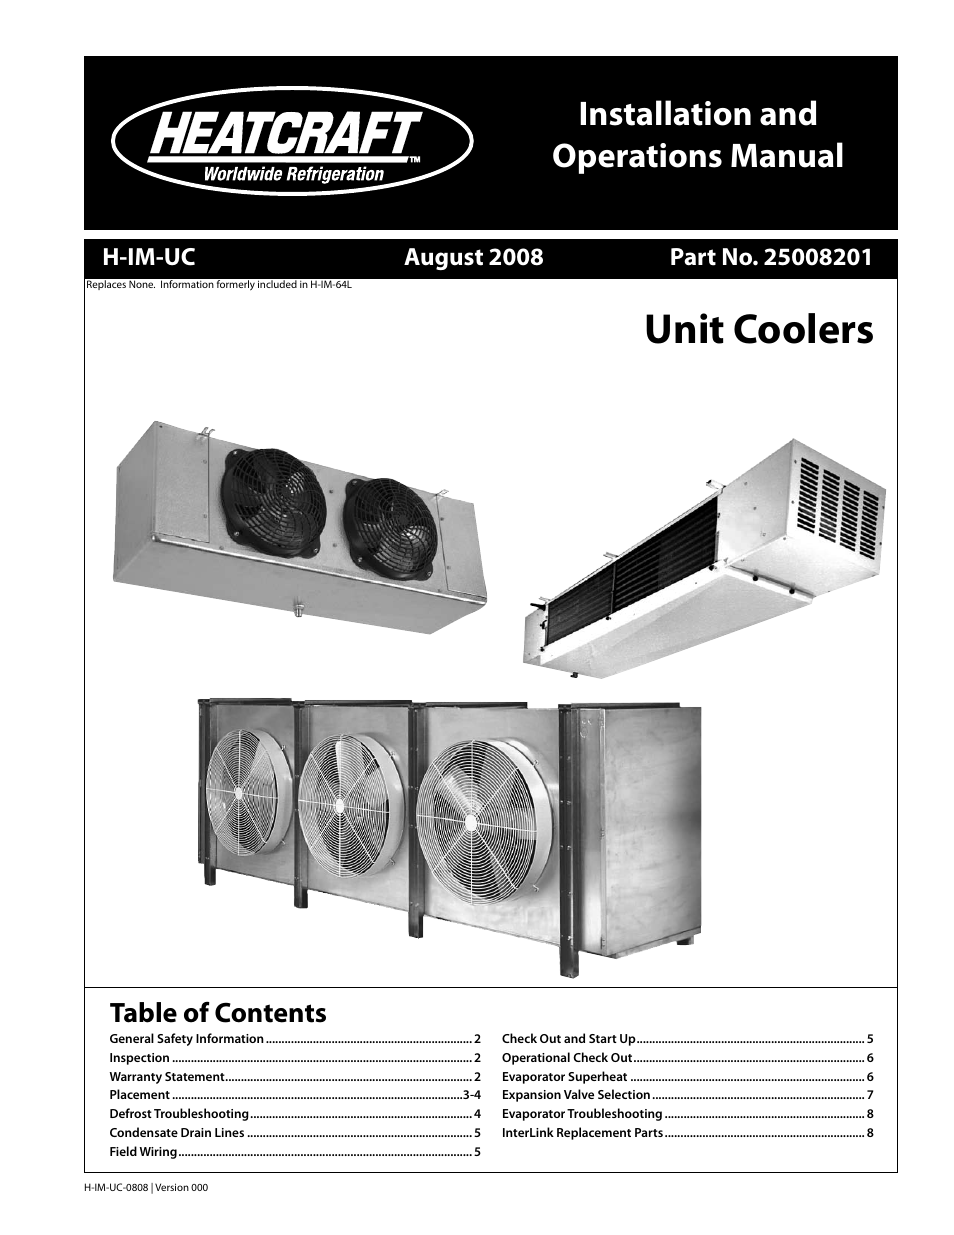 Heatcraft Refrigeration Products Unit Coolers H-IM-UC User Manual ...